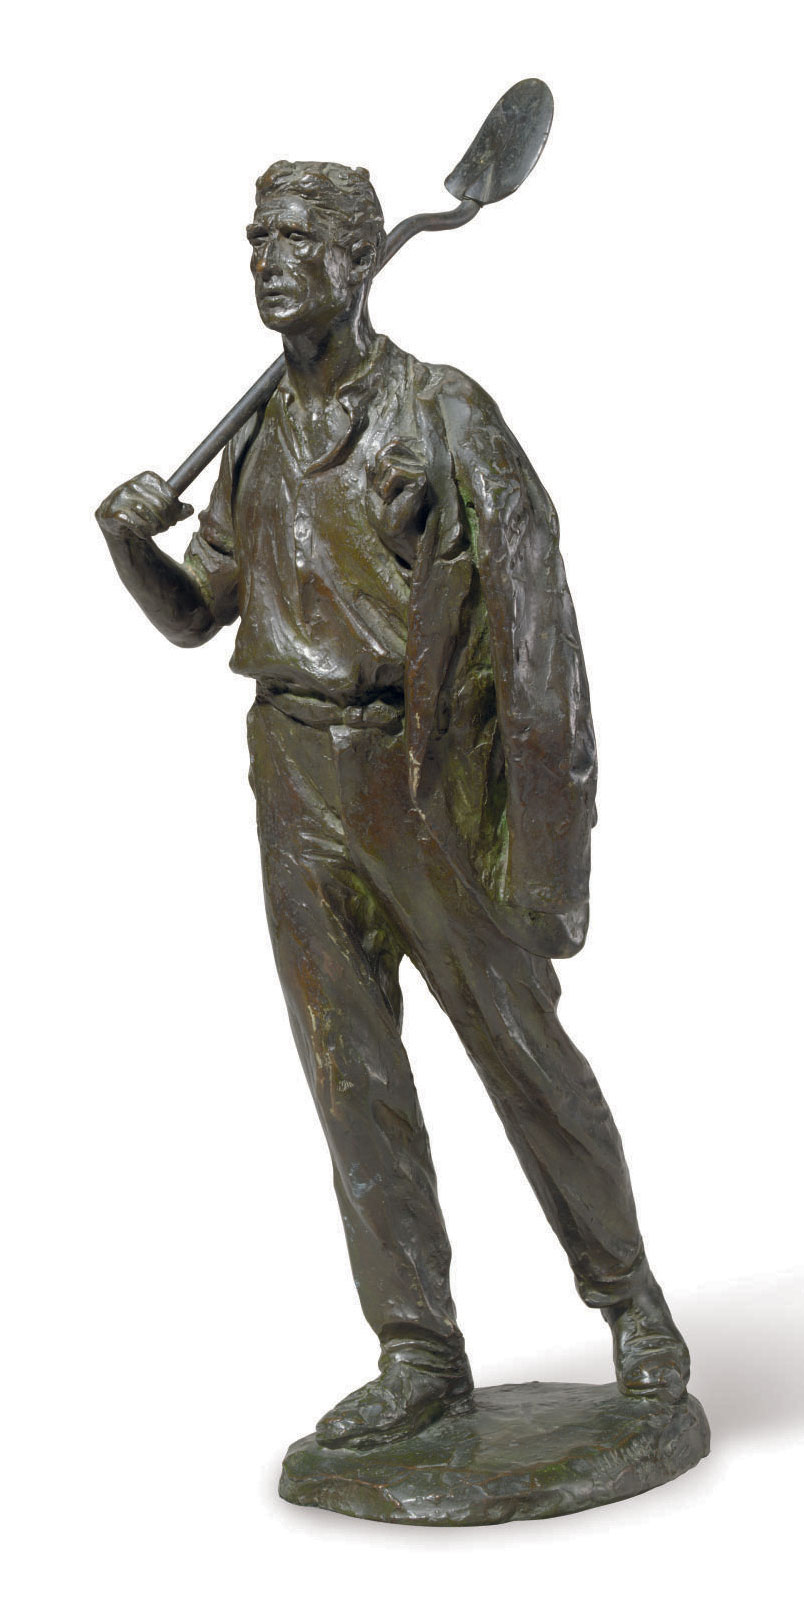 Laborer with Shovel and Coat